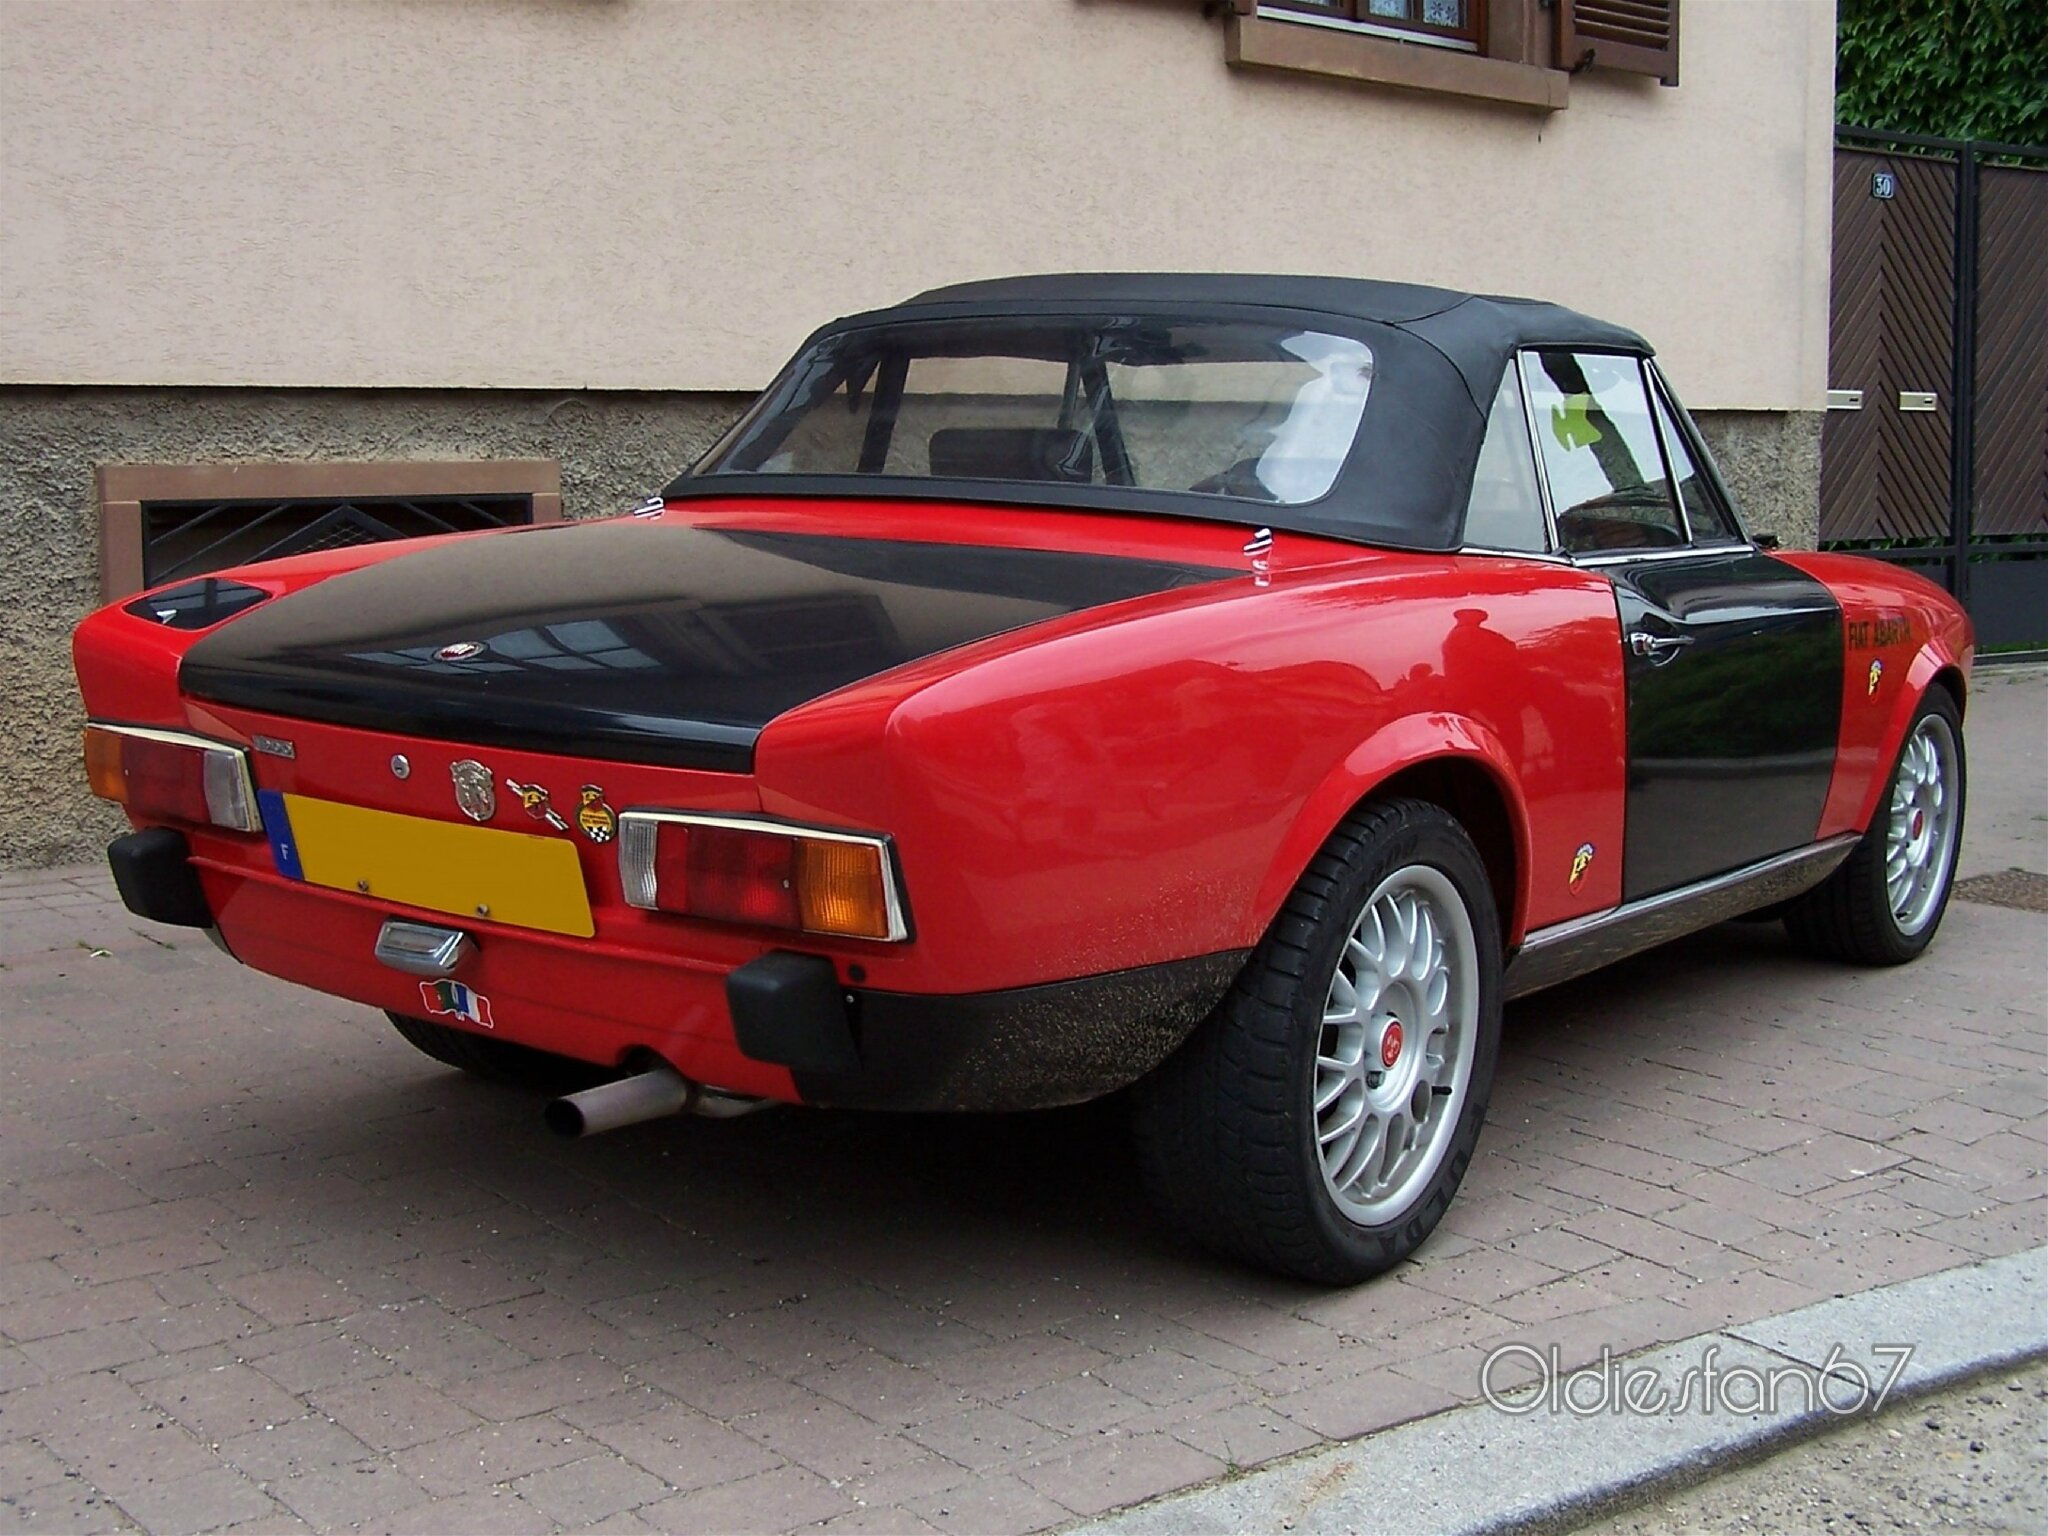 fiat 124 abarth spider 1972 1974 oldiesfan67 mon blog auto. Black Bedroom Furniture Sets. Home Design Ideas